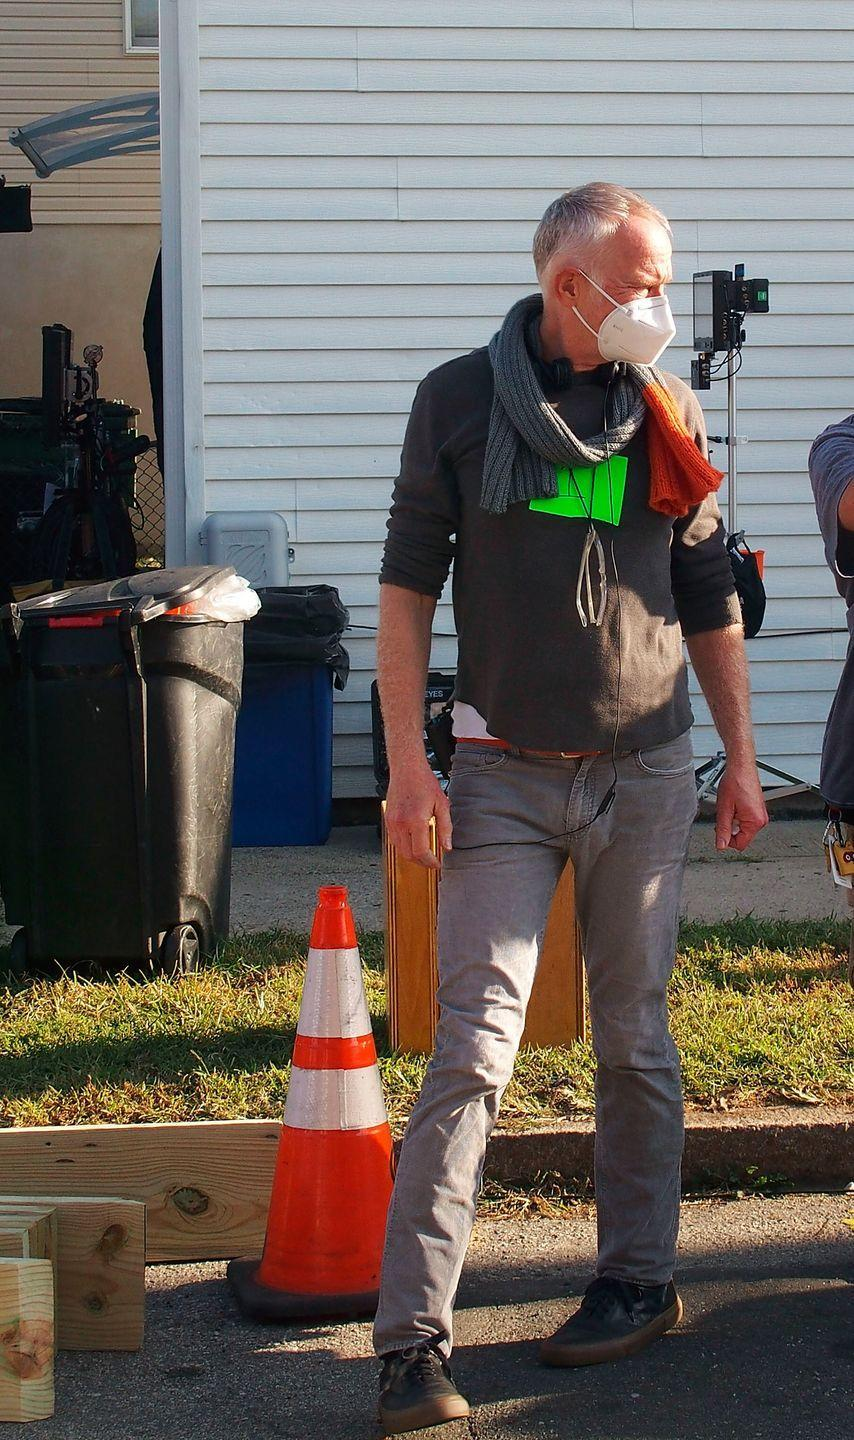 <p>Director Alan Taylor on the set of <em>The Many Saints of Newark</em> on September 23, 2020 in Bloomfield, New Jersey.</p>